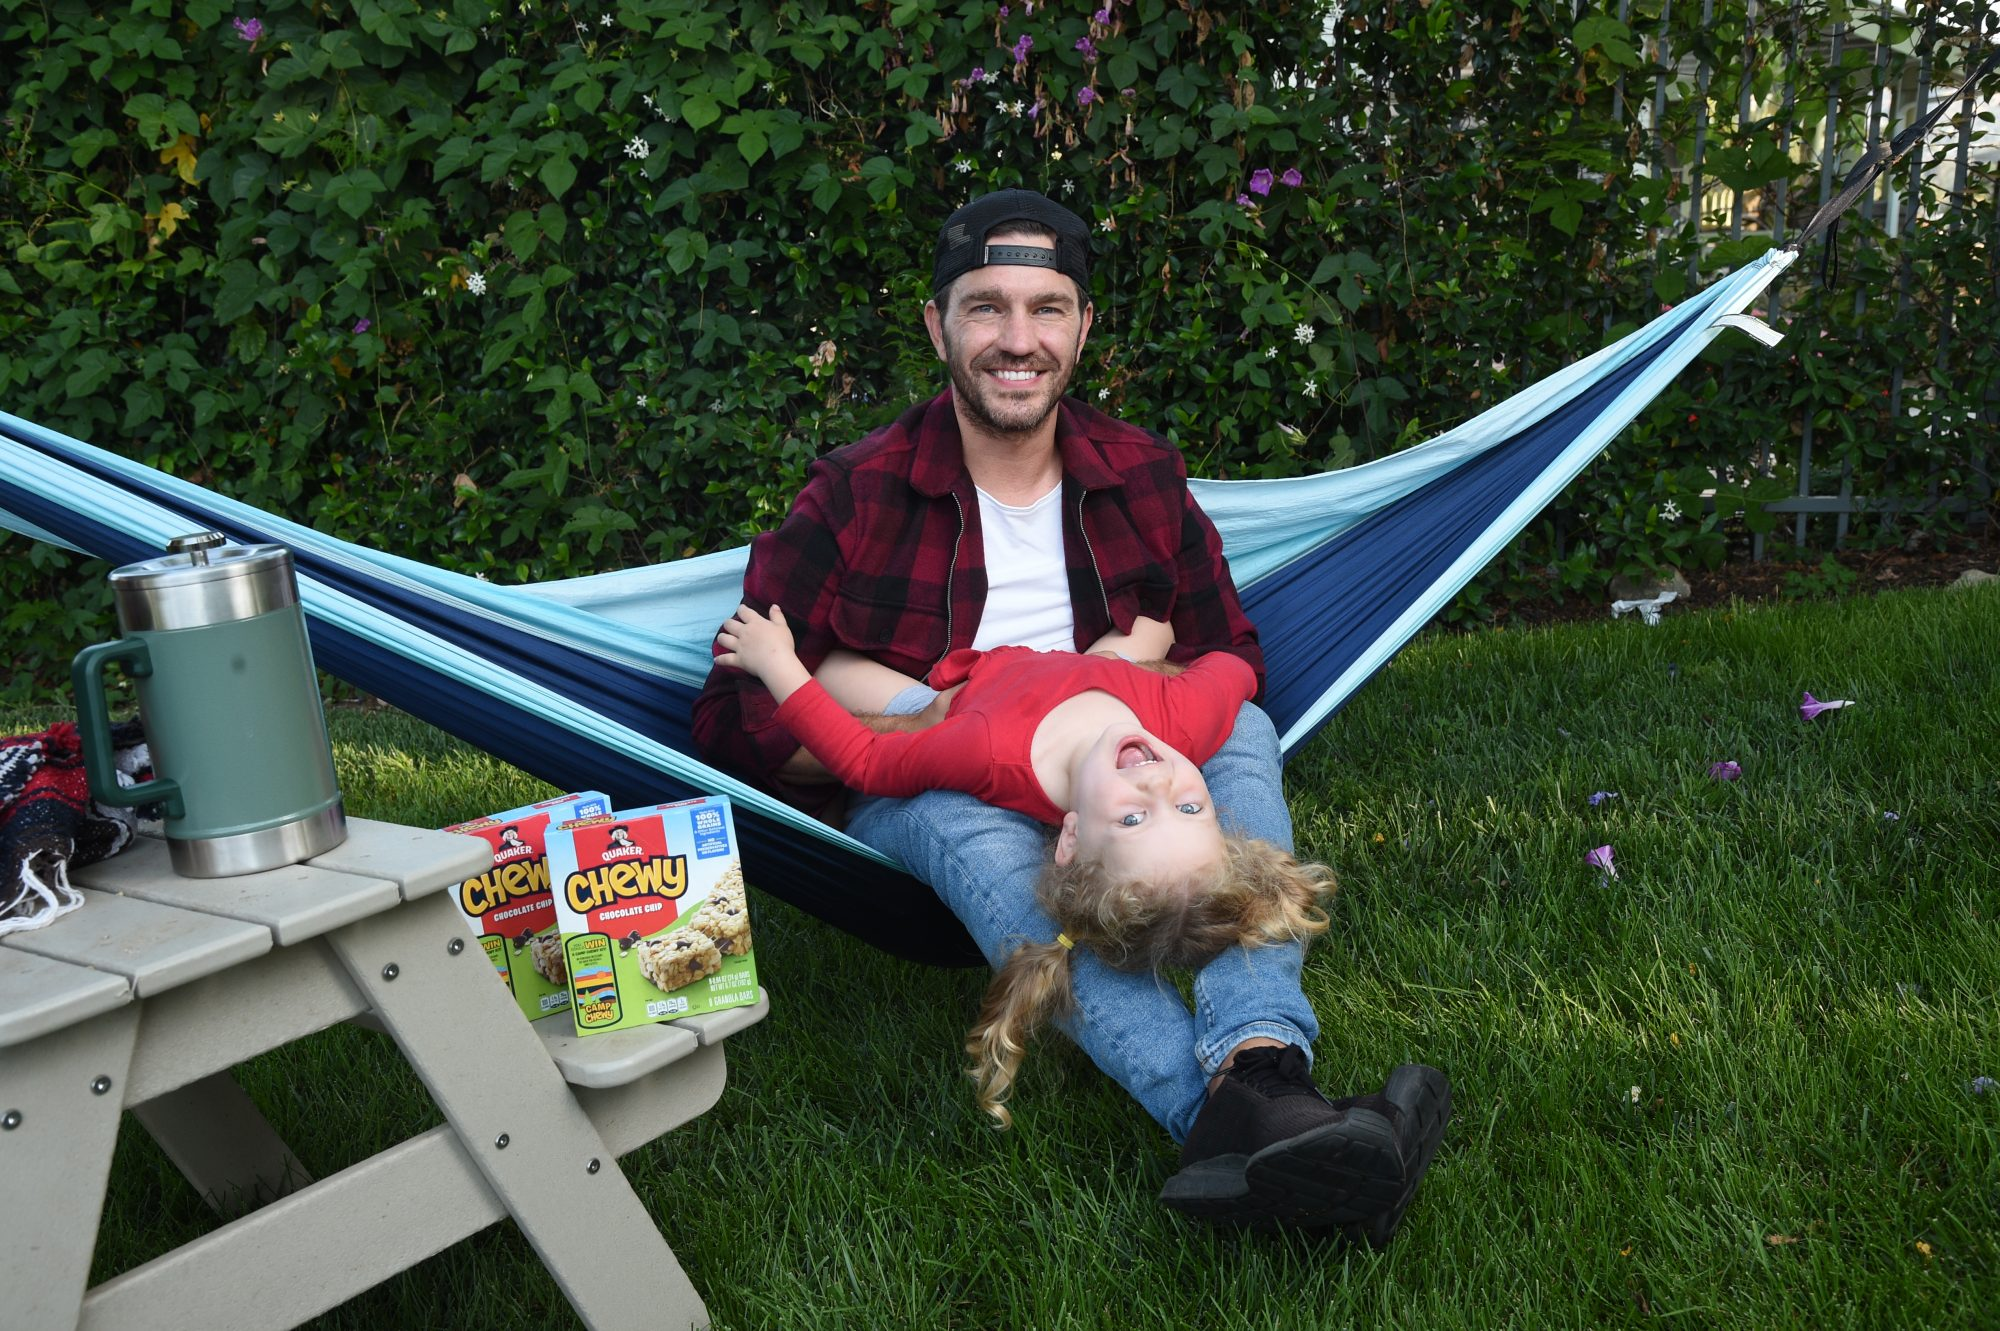 Andy Grammer and Daughter for Quaker`s Camp Chewy